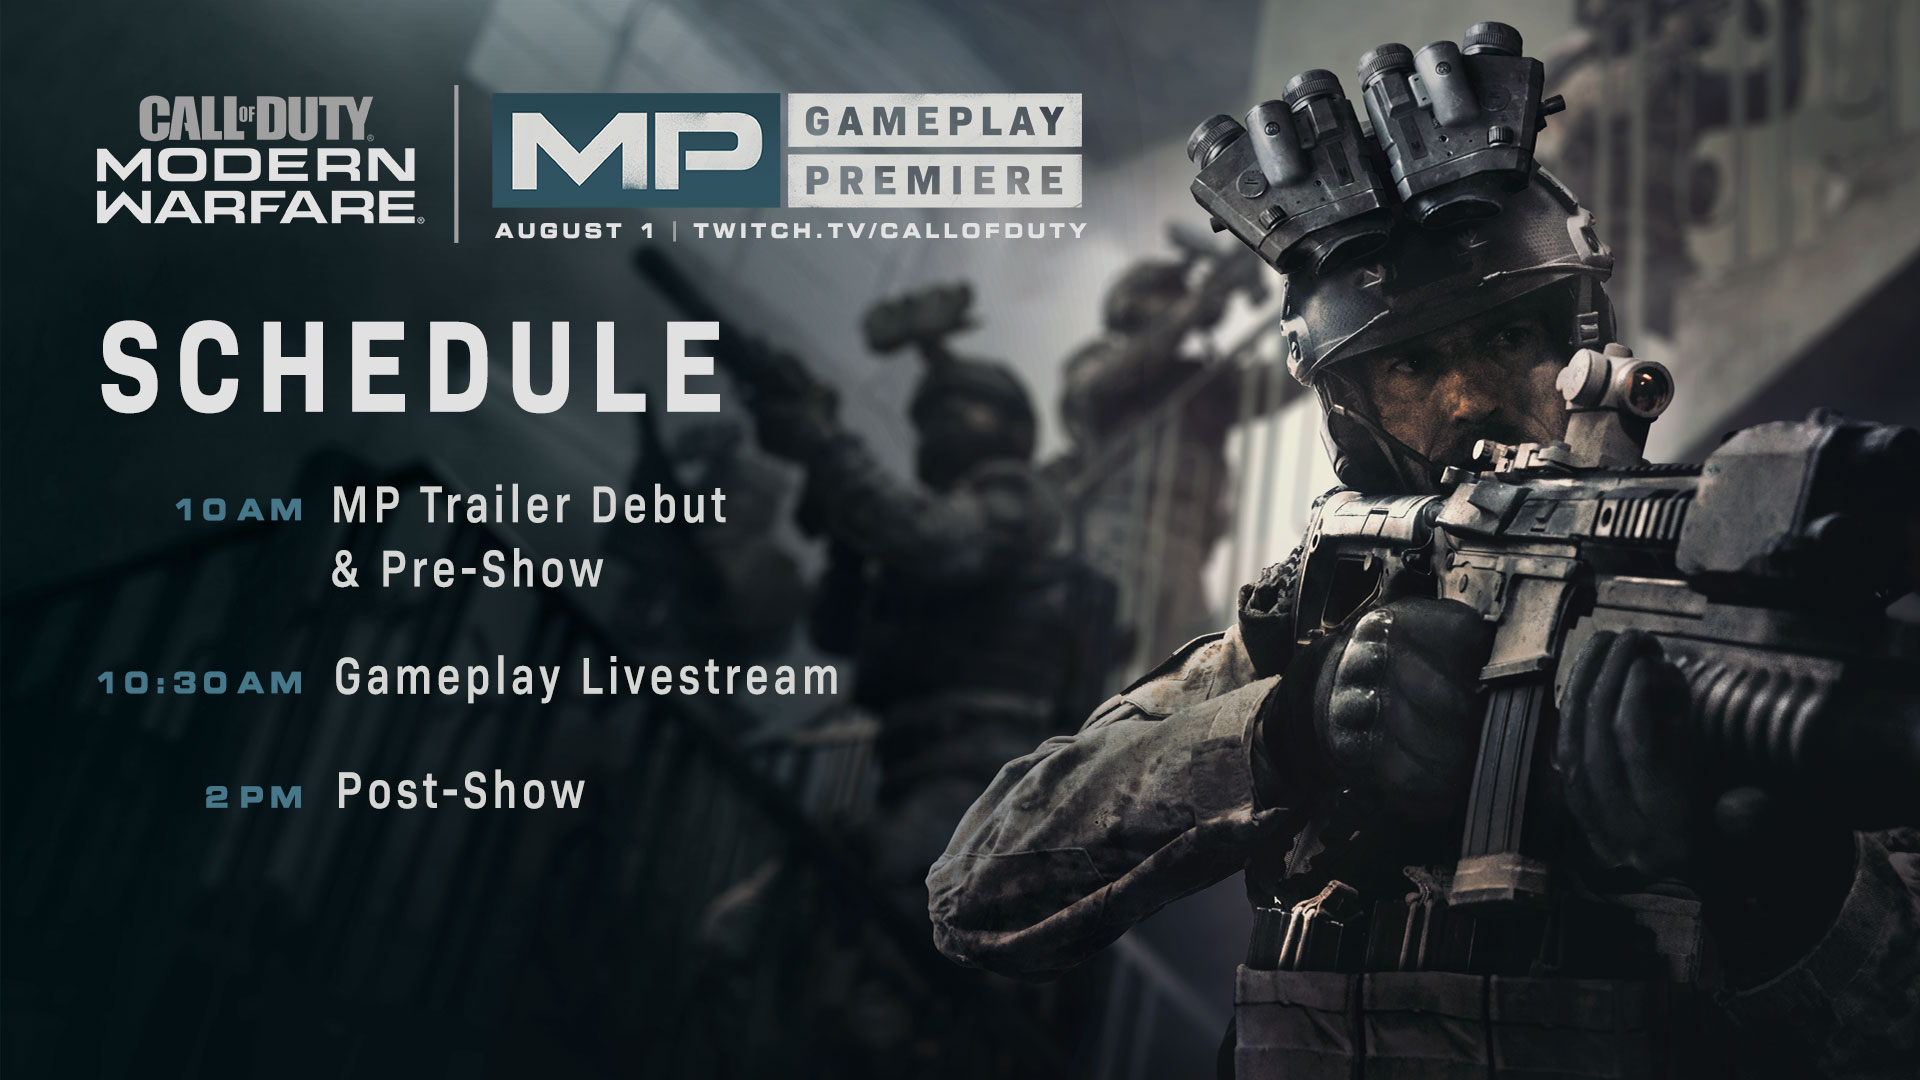 Call Of Duty Modern Warfare Multiplayer Premiere Event Let The